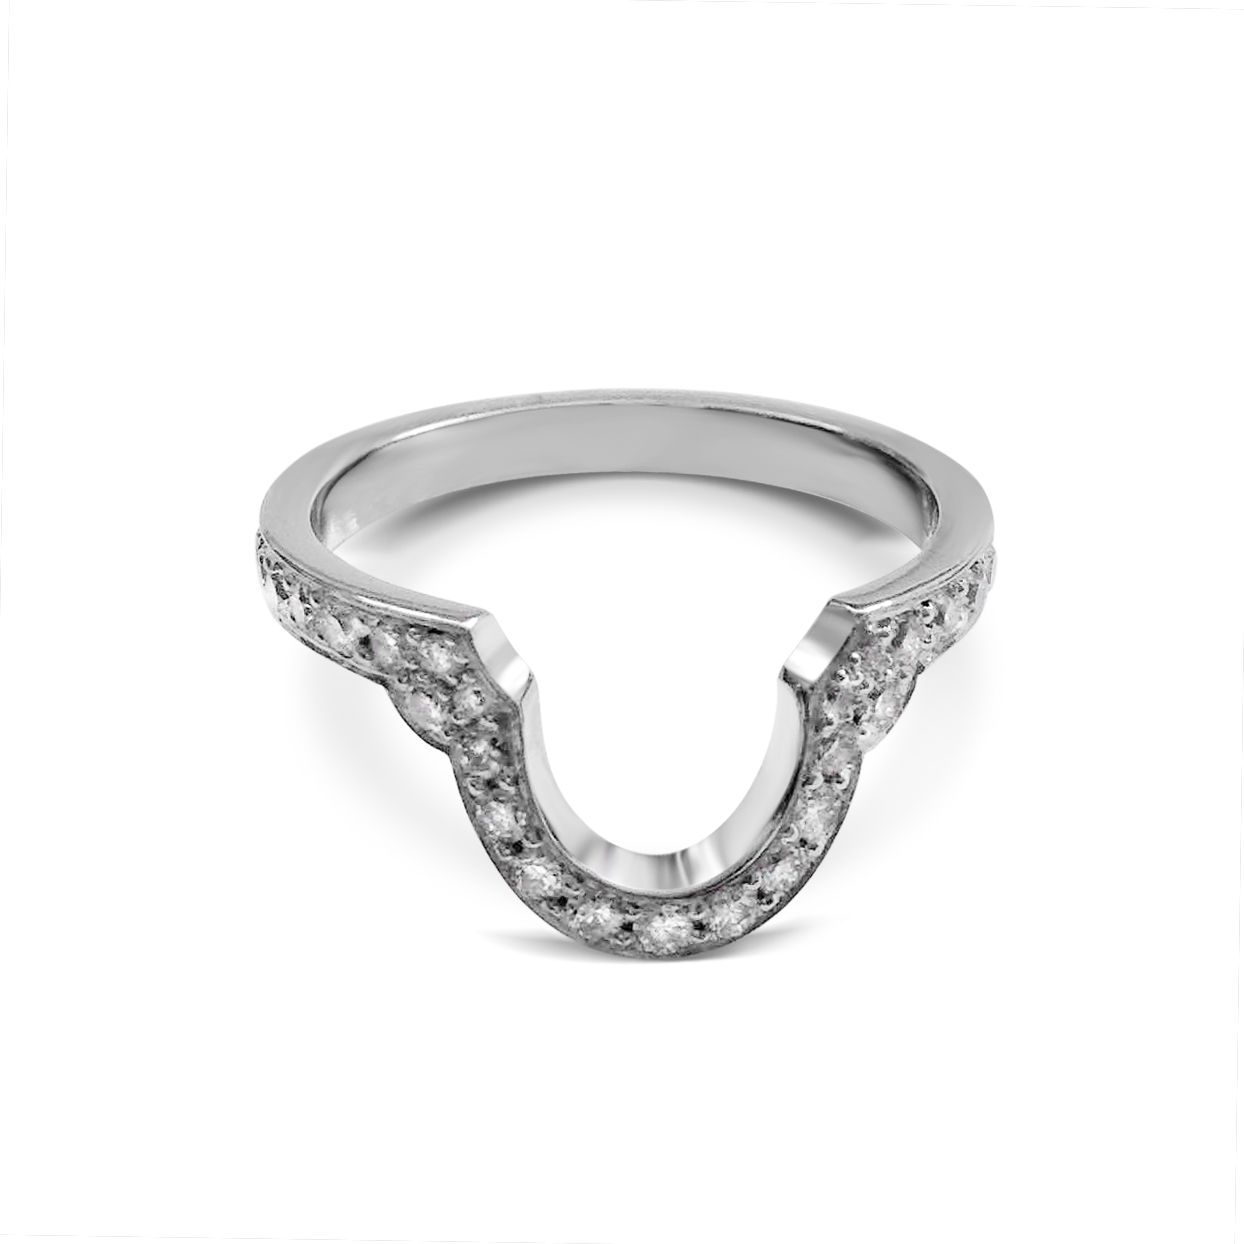 Bespoke Shaped Diamond Thread And Grain Set Wedding Band Mounted In Platinum Made To